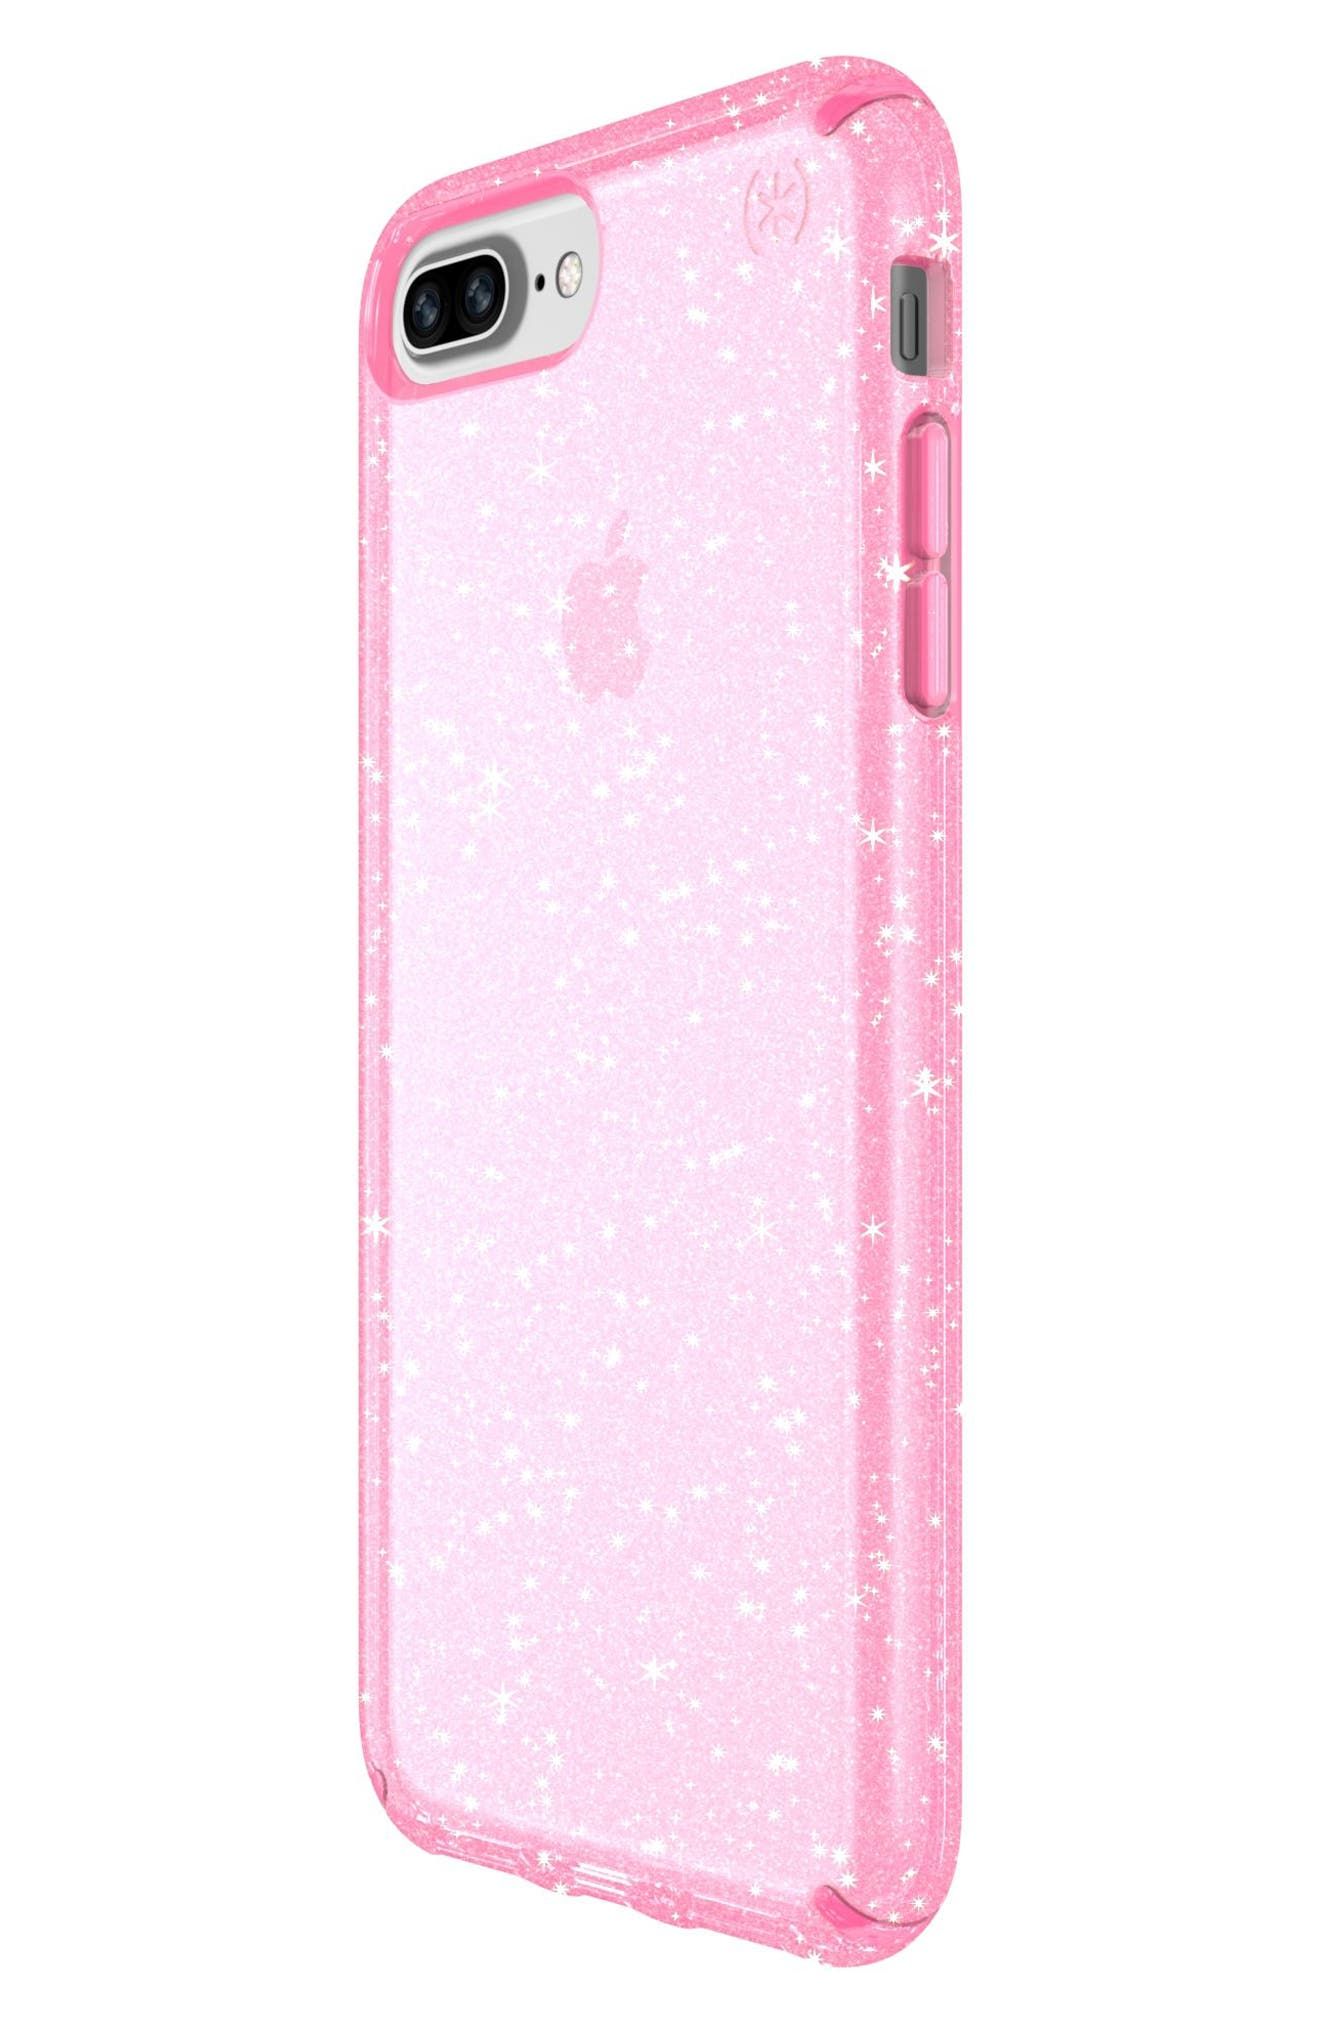 iPhone 6/6s/7/8 Plus Case,                             Alternate thumbnail 3, color,                             Bella Pink Gold Glitter/ Pink